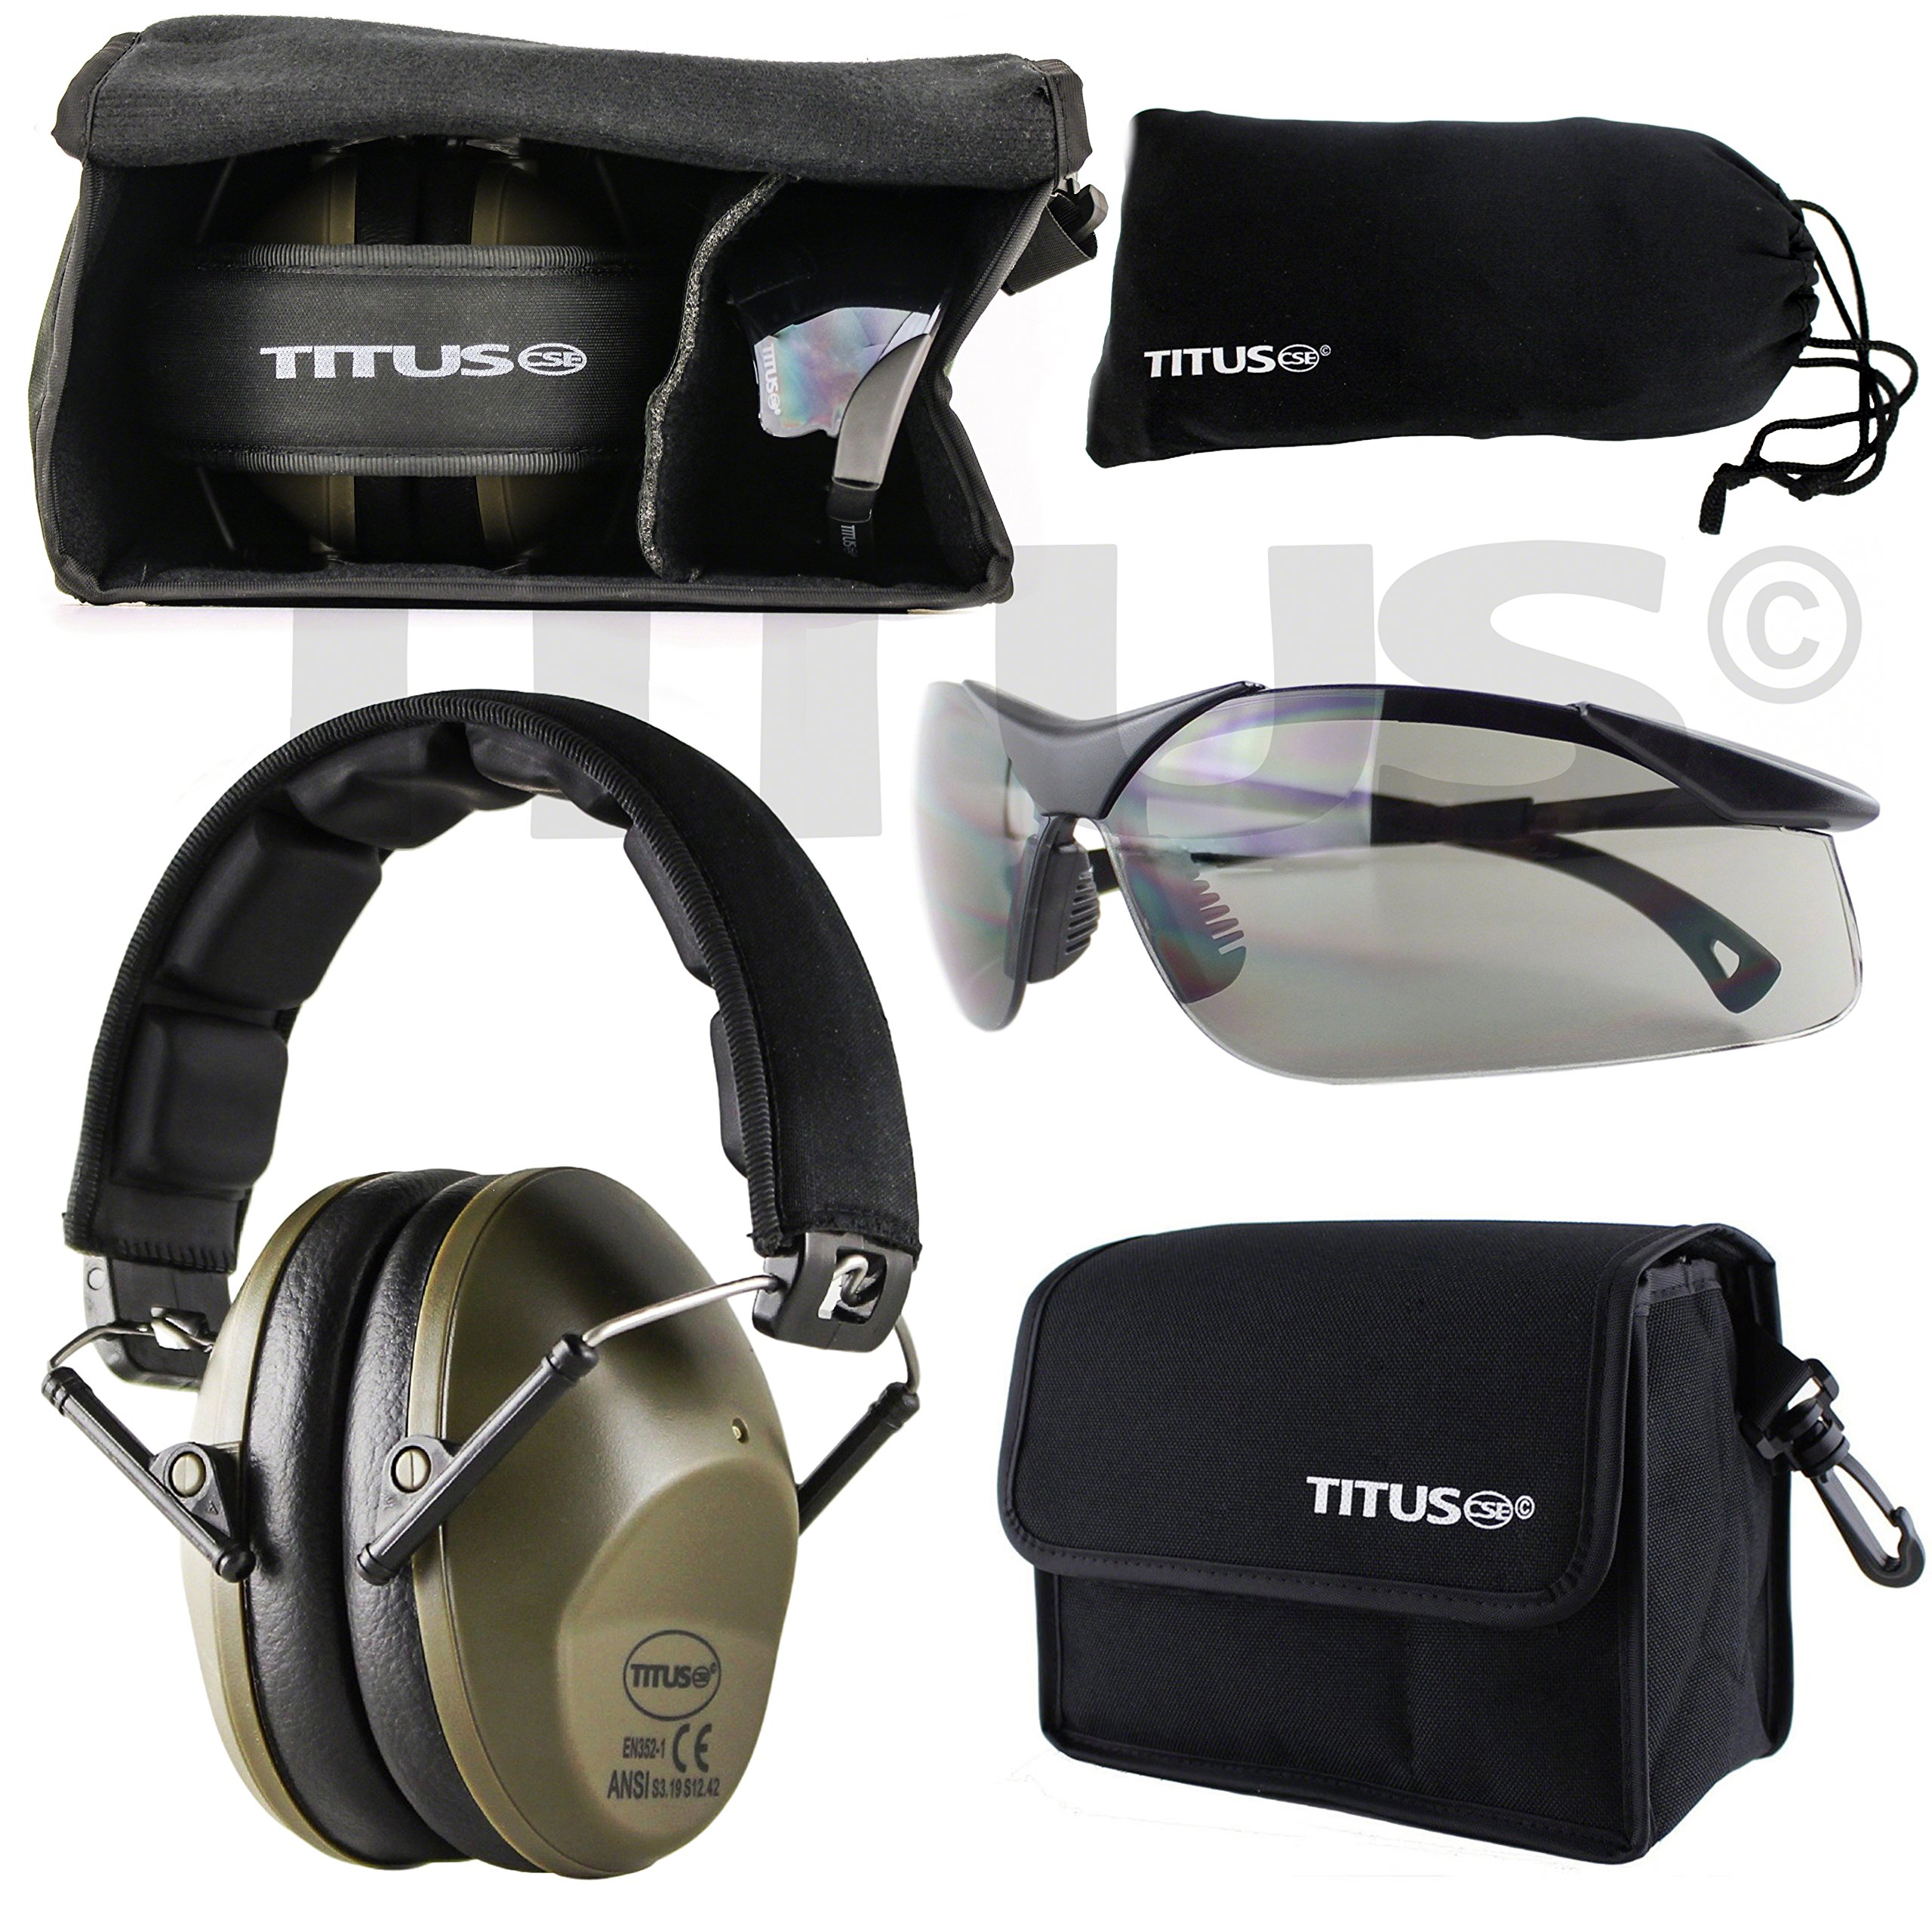 Titus TOP Slim-Line Safety Glasses and Earmuff Combos (Olive, G28 Smoke EMT Professional Glasses) by Titus